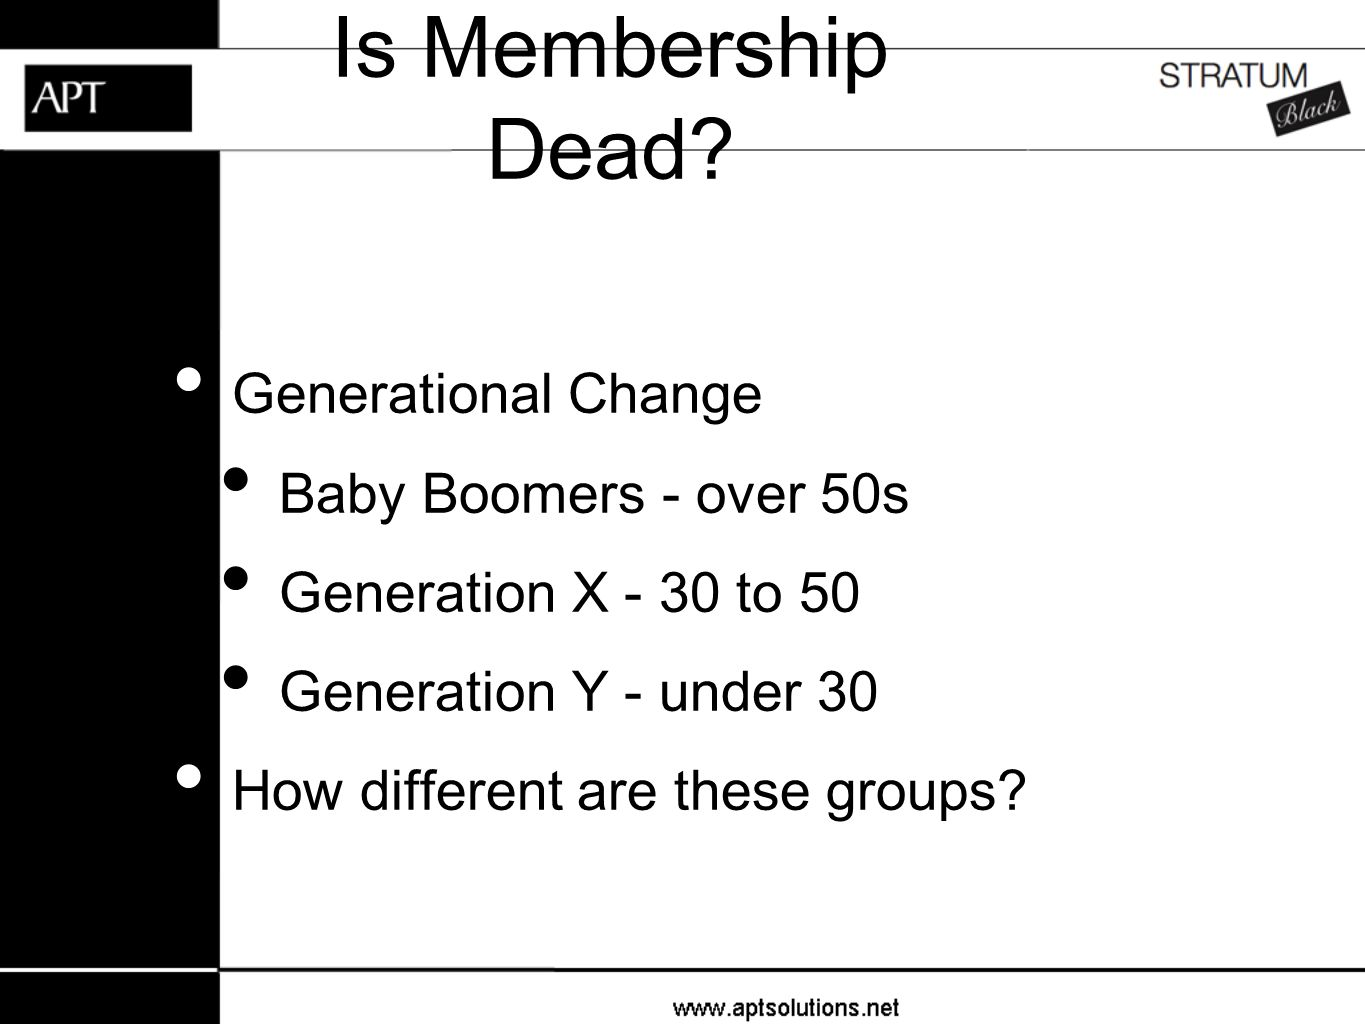 Is Membership Dead? Generational Change Baby Boomers - over 50s Generation X - 30 to 50 Generation Y - under 30 How different are these groups?